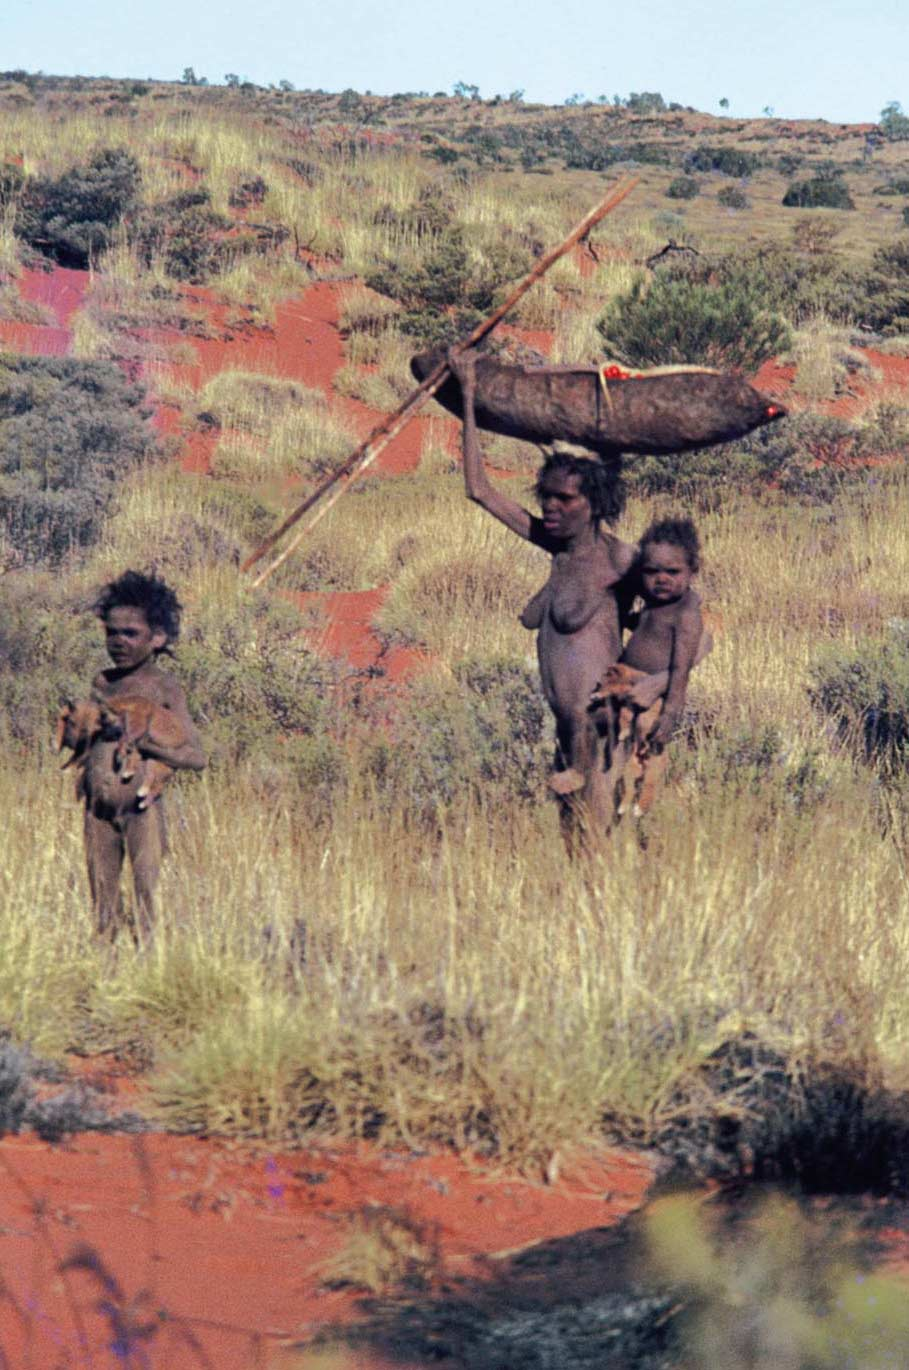 A woman standing in the bush with a wooden vessel on her head. She is carrying a baby and a young child is standing nearby and holding what appears to be two dingo puppies.